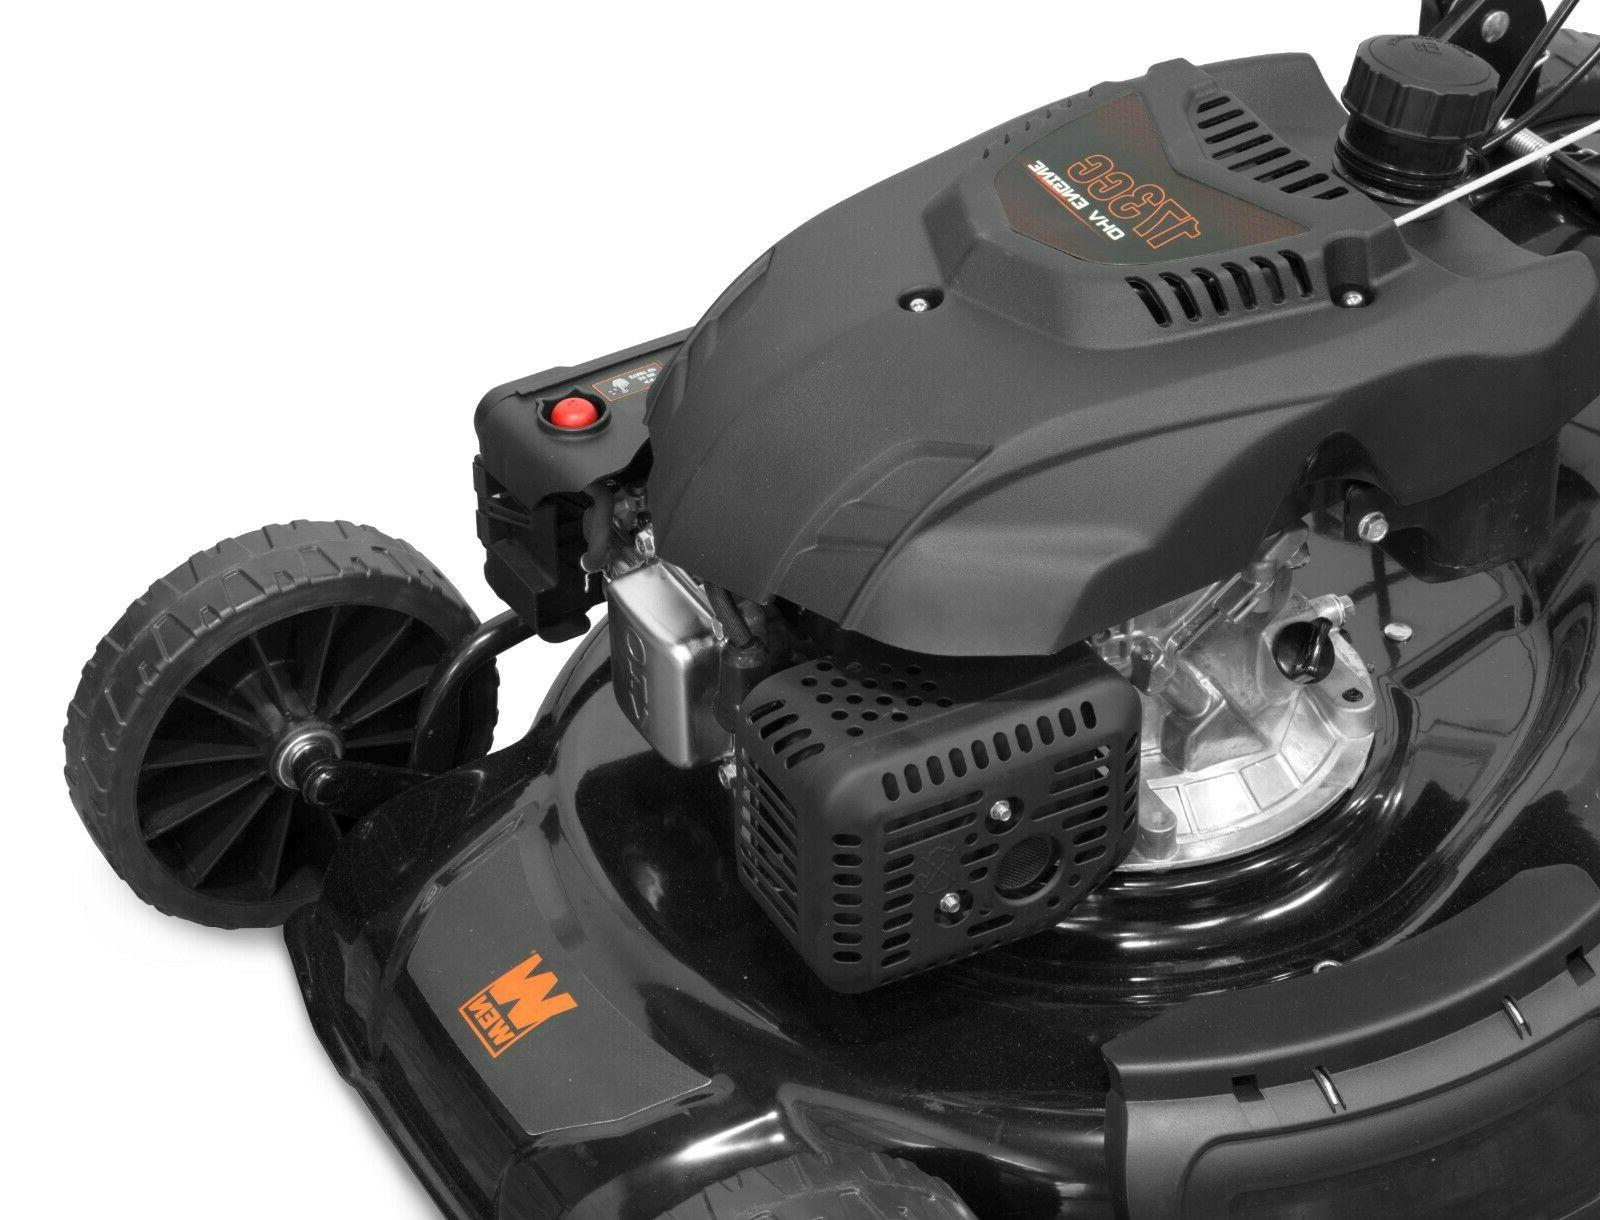 WEN 173cc Gas-Powered 4-in-1 Self-Propelled Lawn Mower